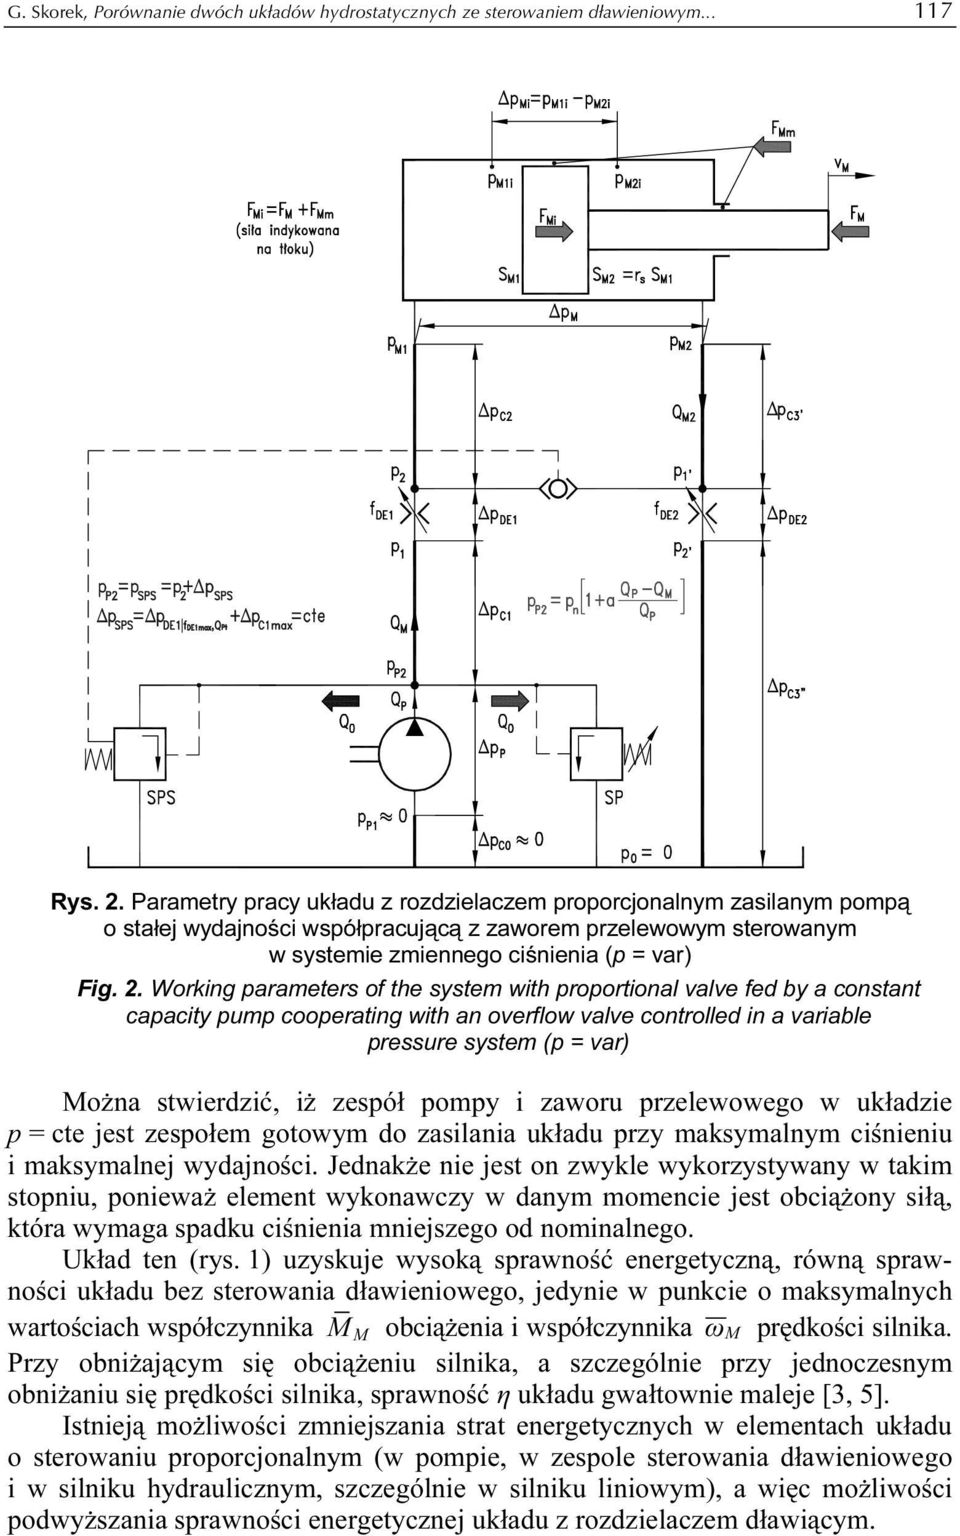 Working parameters of the system with proportional valve fed by a constant capacity pump cooperating with an overflow valve controlled in a variable pressure system (p = var) Można stwierdzić, iż